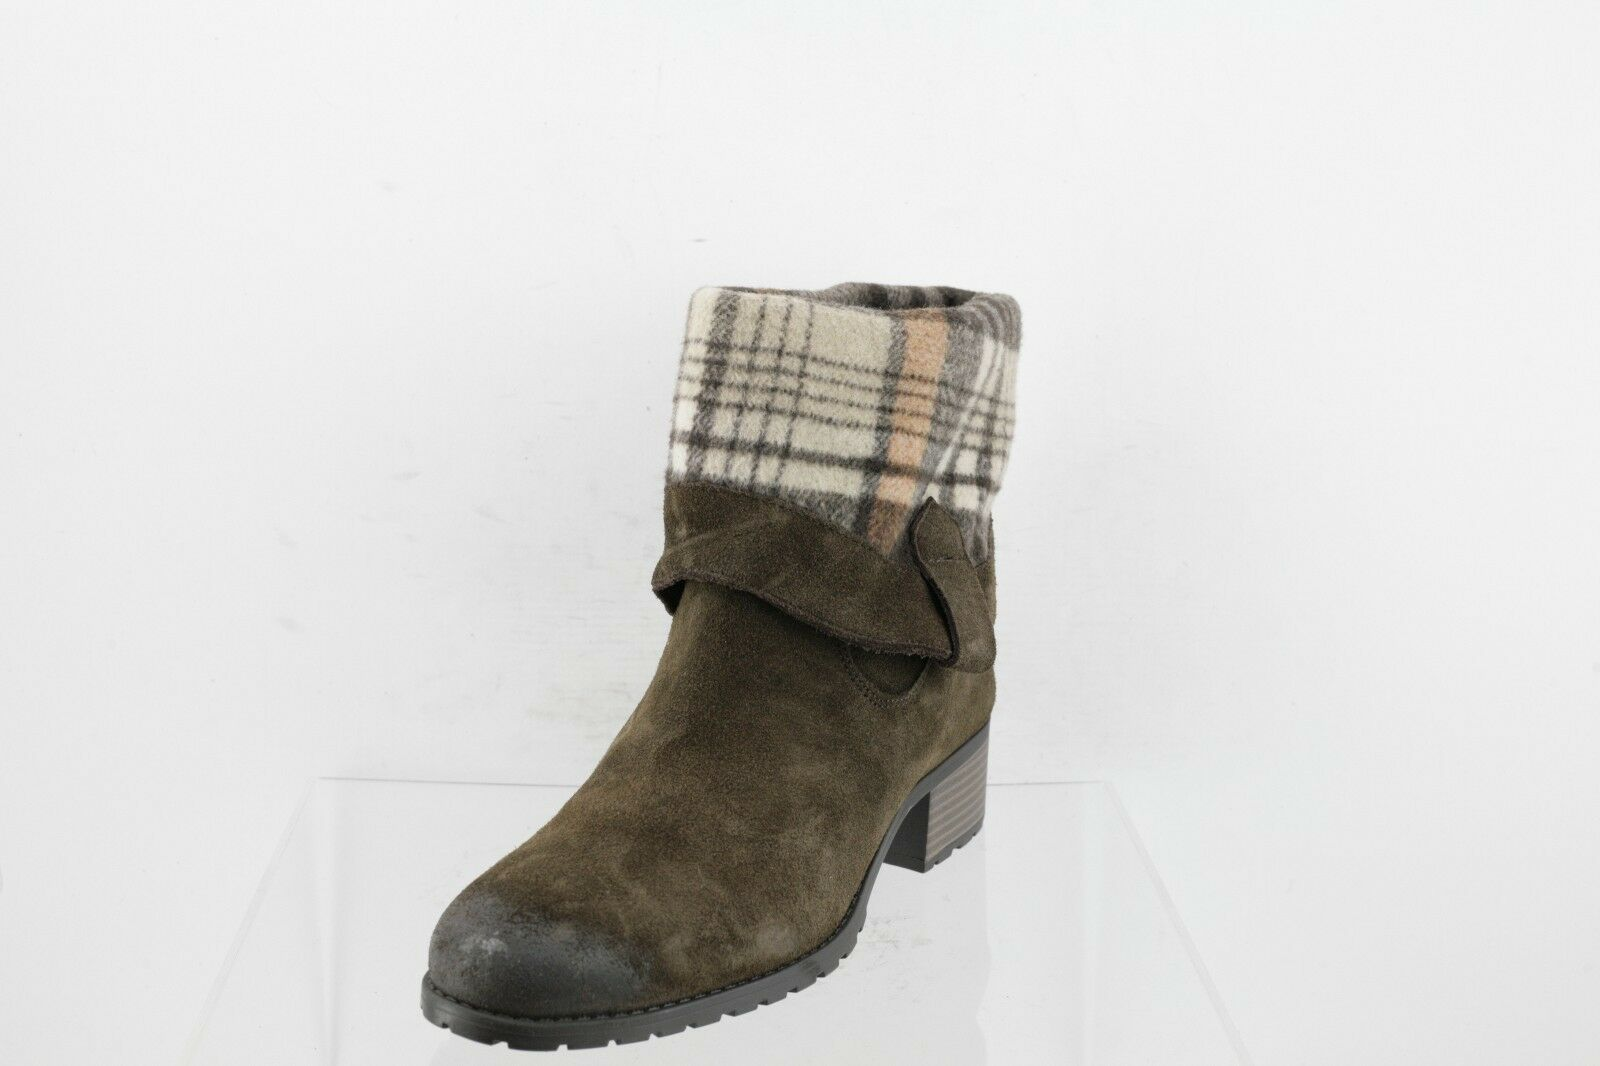 Charles by Charles David Brown Suede Mid-Calf Boots Women's Shoes Size 10 M NEW